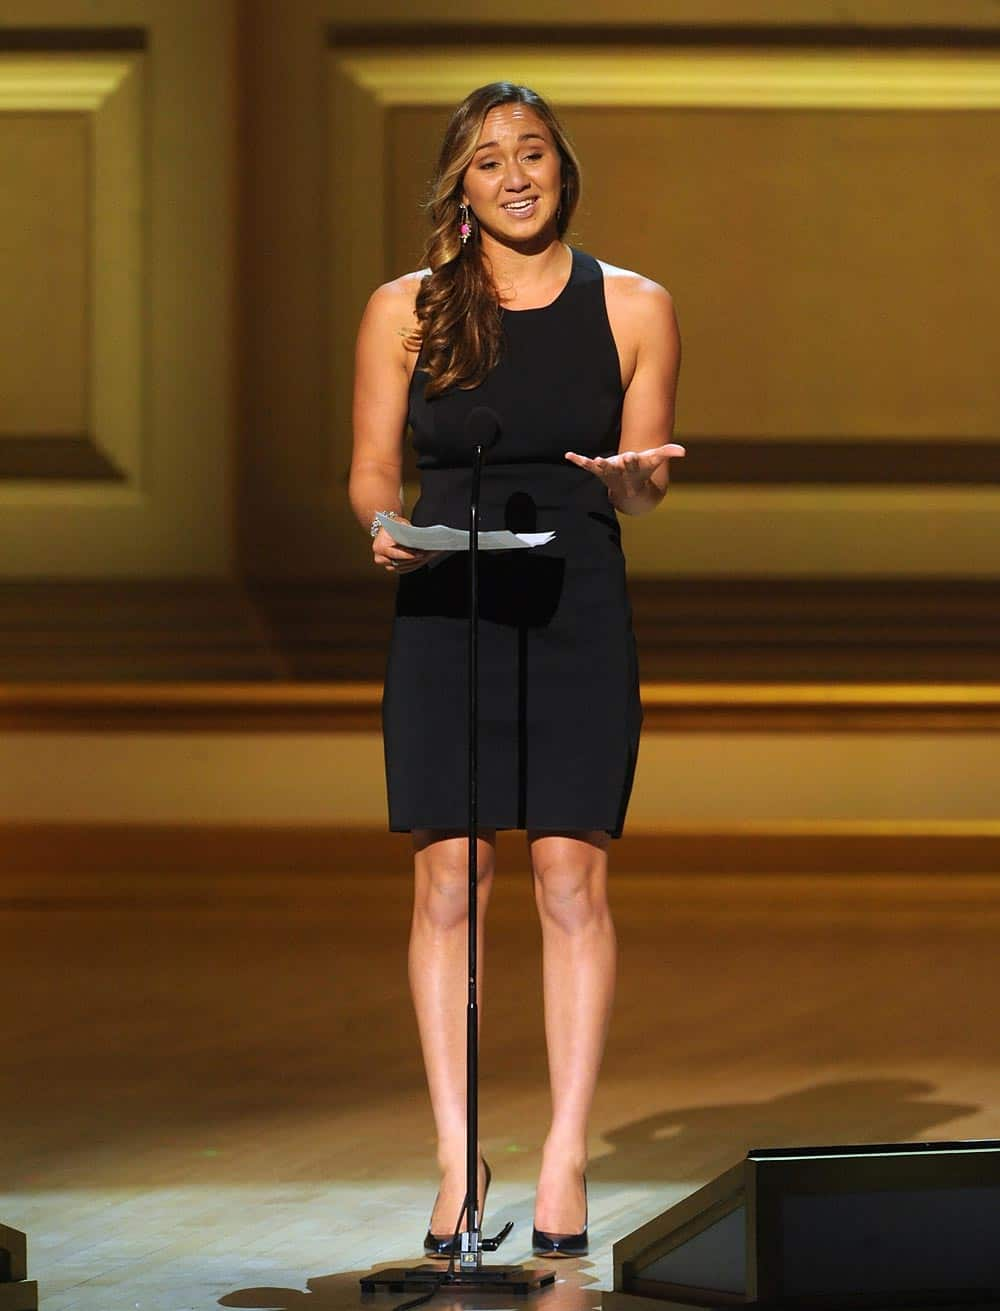 Surfer Carissa Moore accepts the Game Changer Award on stage at the 2013 Glamour Women of the Year Awards, in New York.